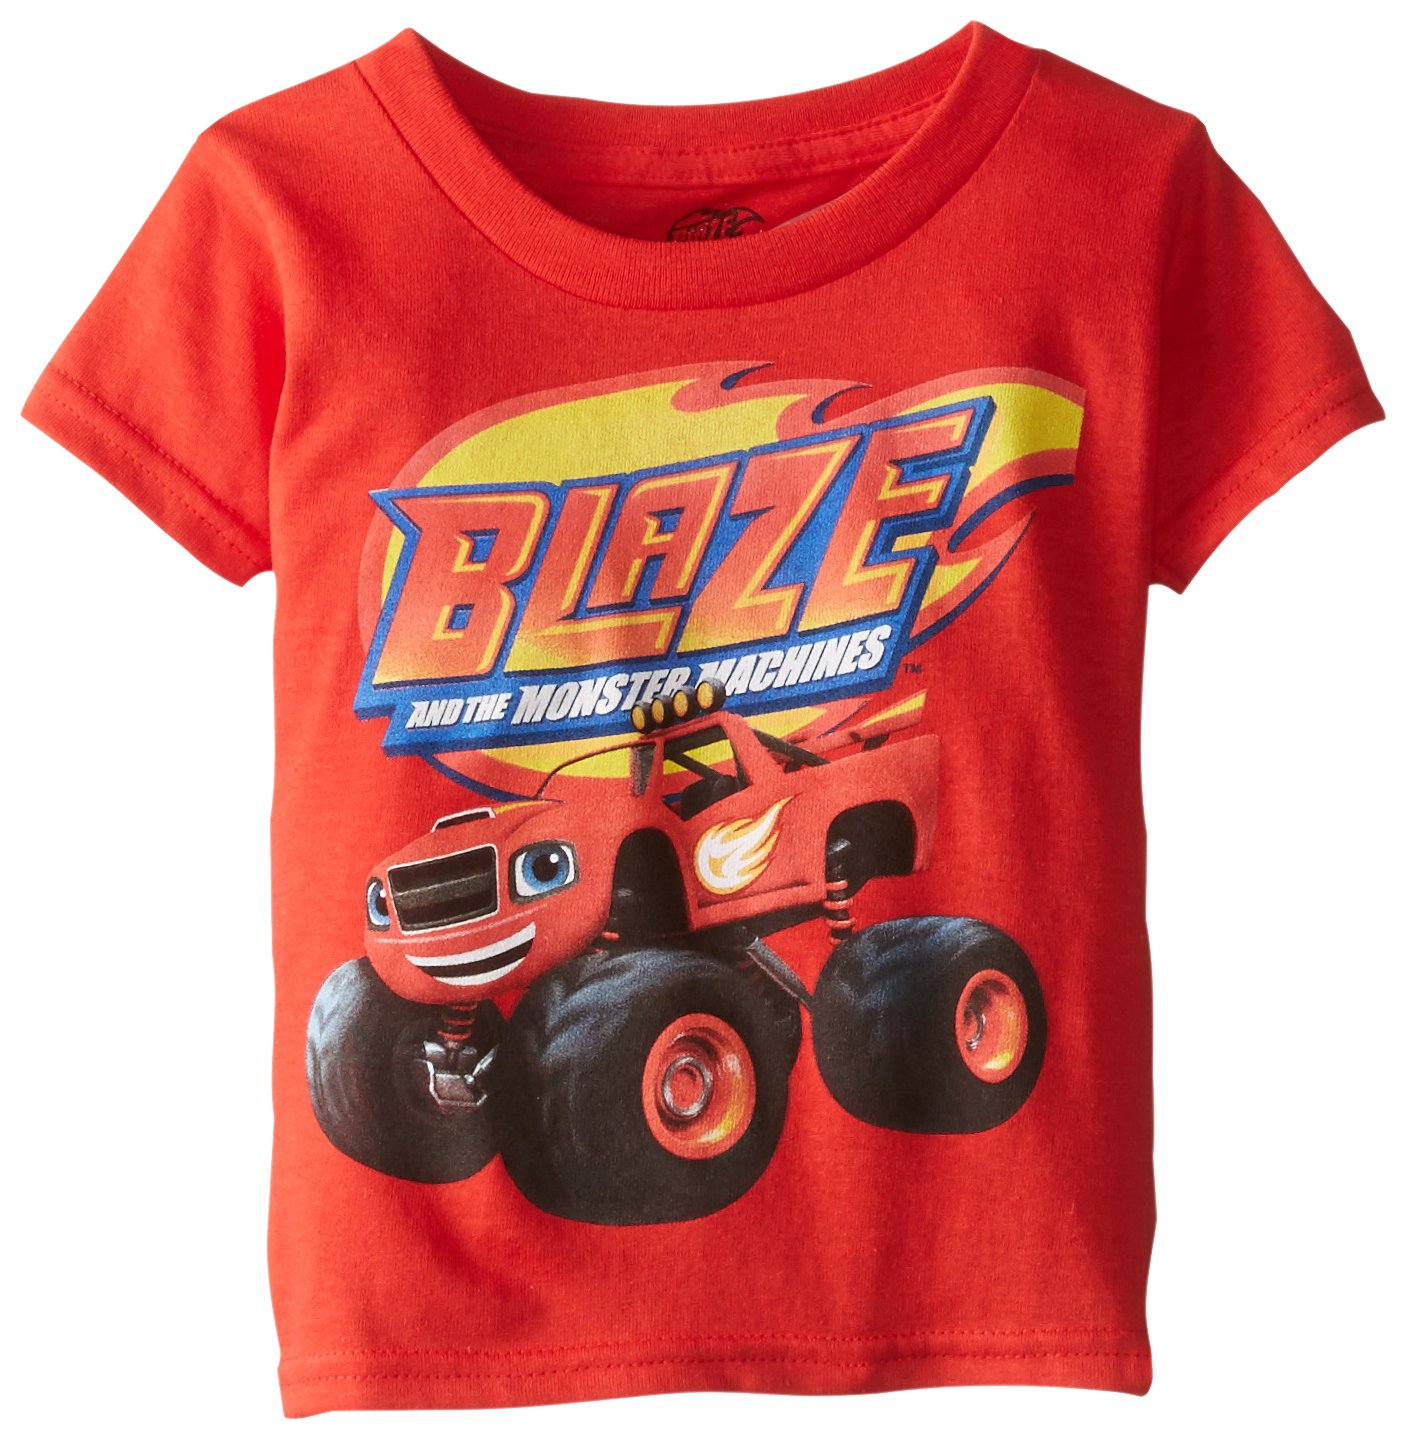 Blaze and the Monster Machines Little Boys' Toddler Short Sleeve T-Shirt, Red, 4T